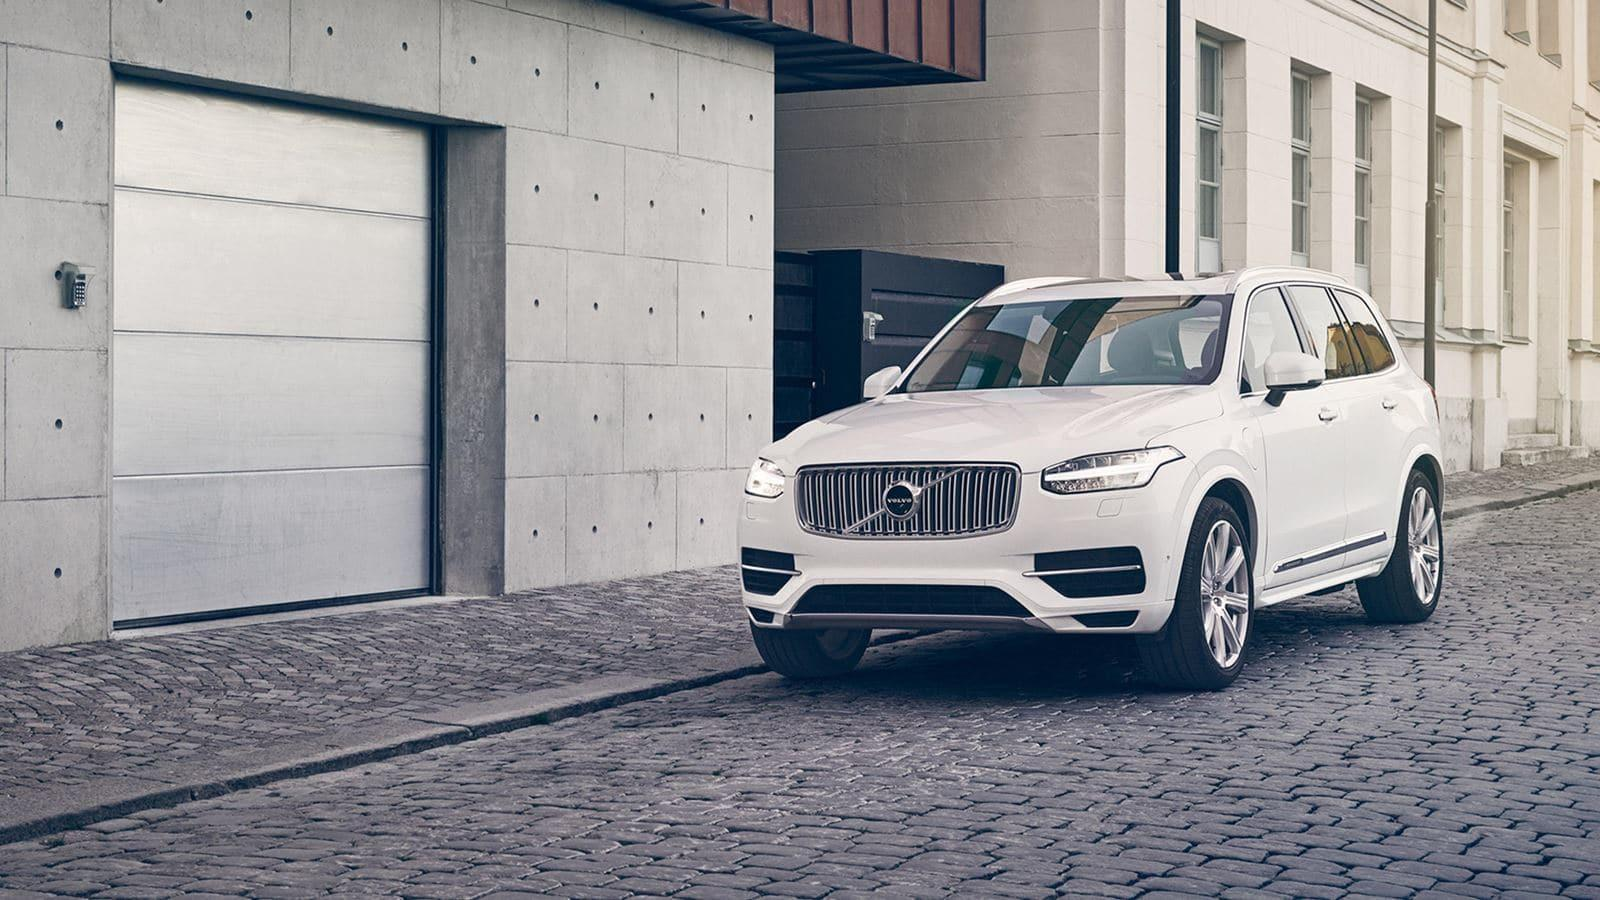 2018 Volvo XC90 Luxury SUV